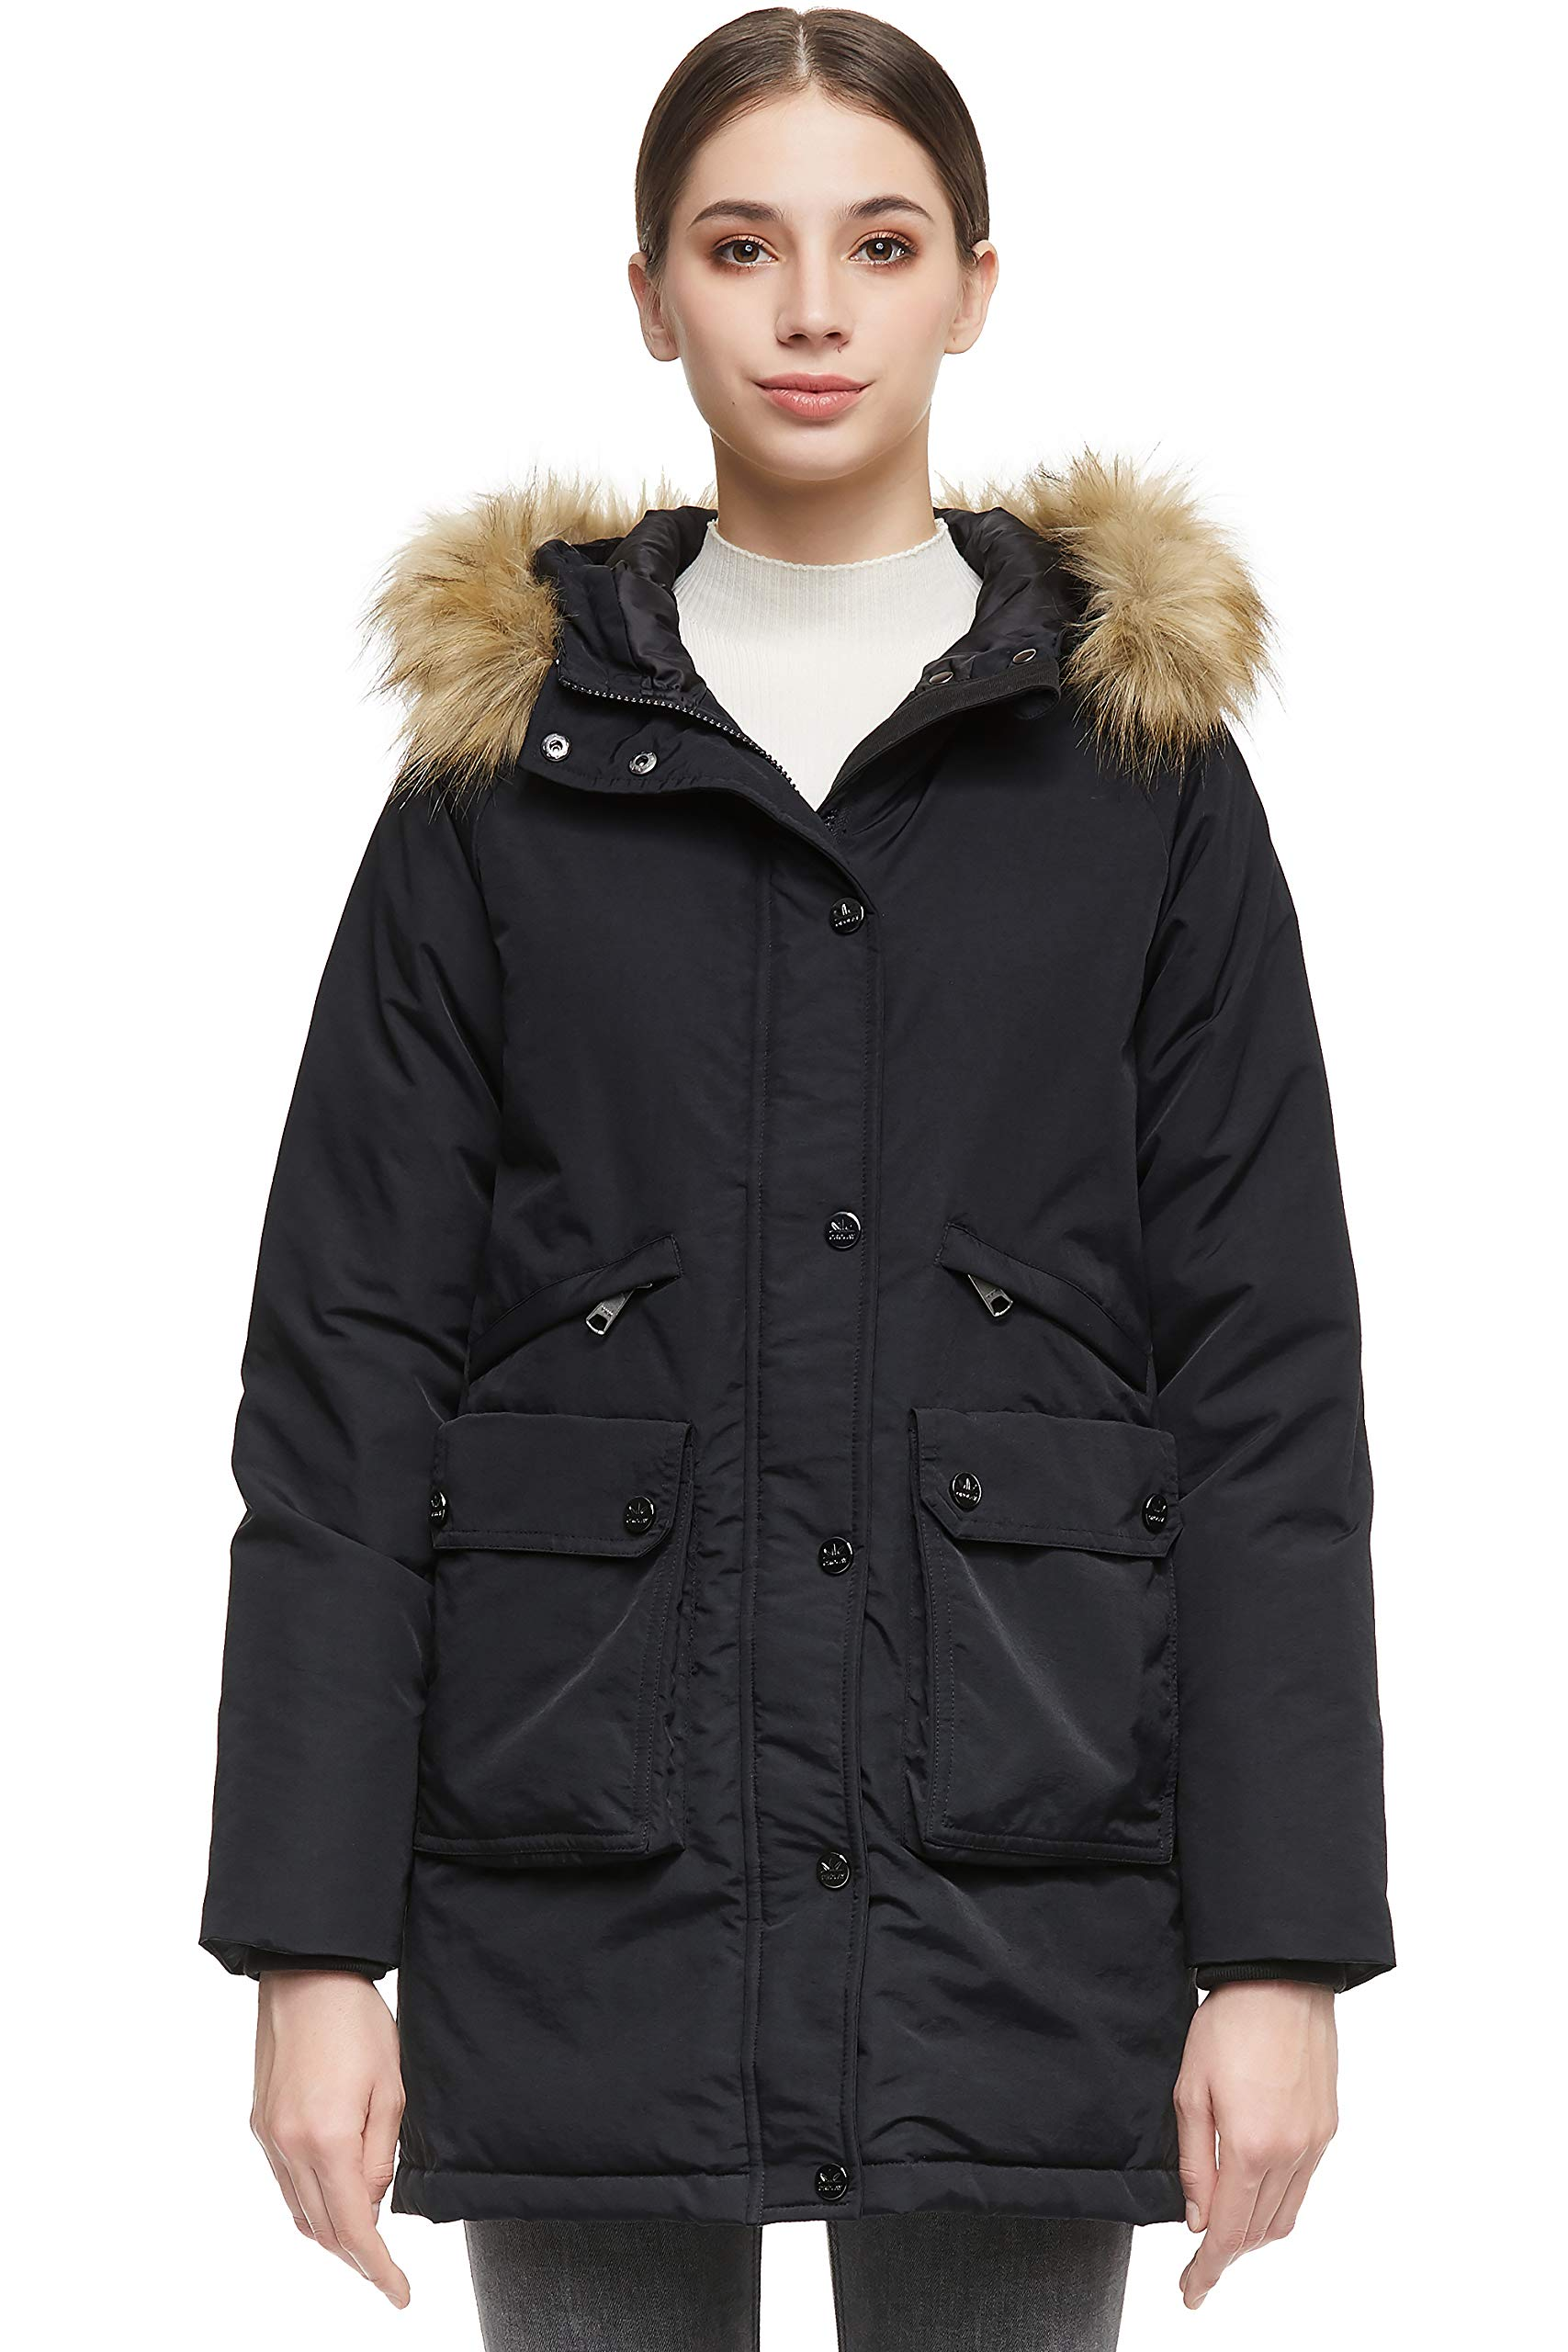 Orolay Women Warm Down Jacket with Pockets Removable Fur Coat